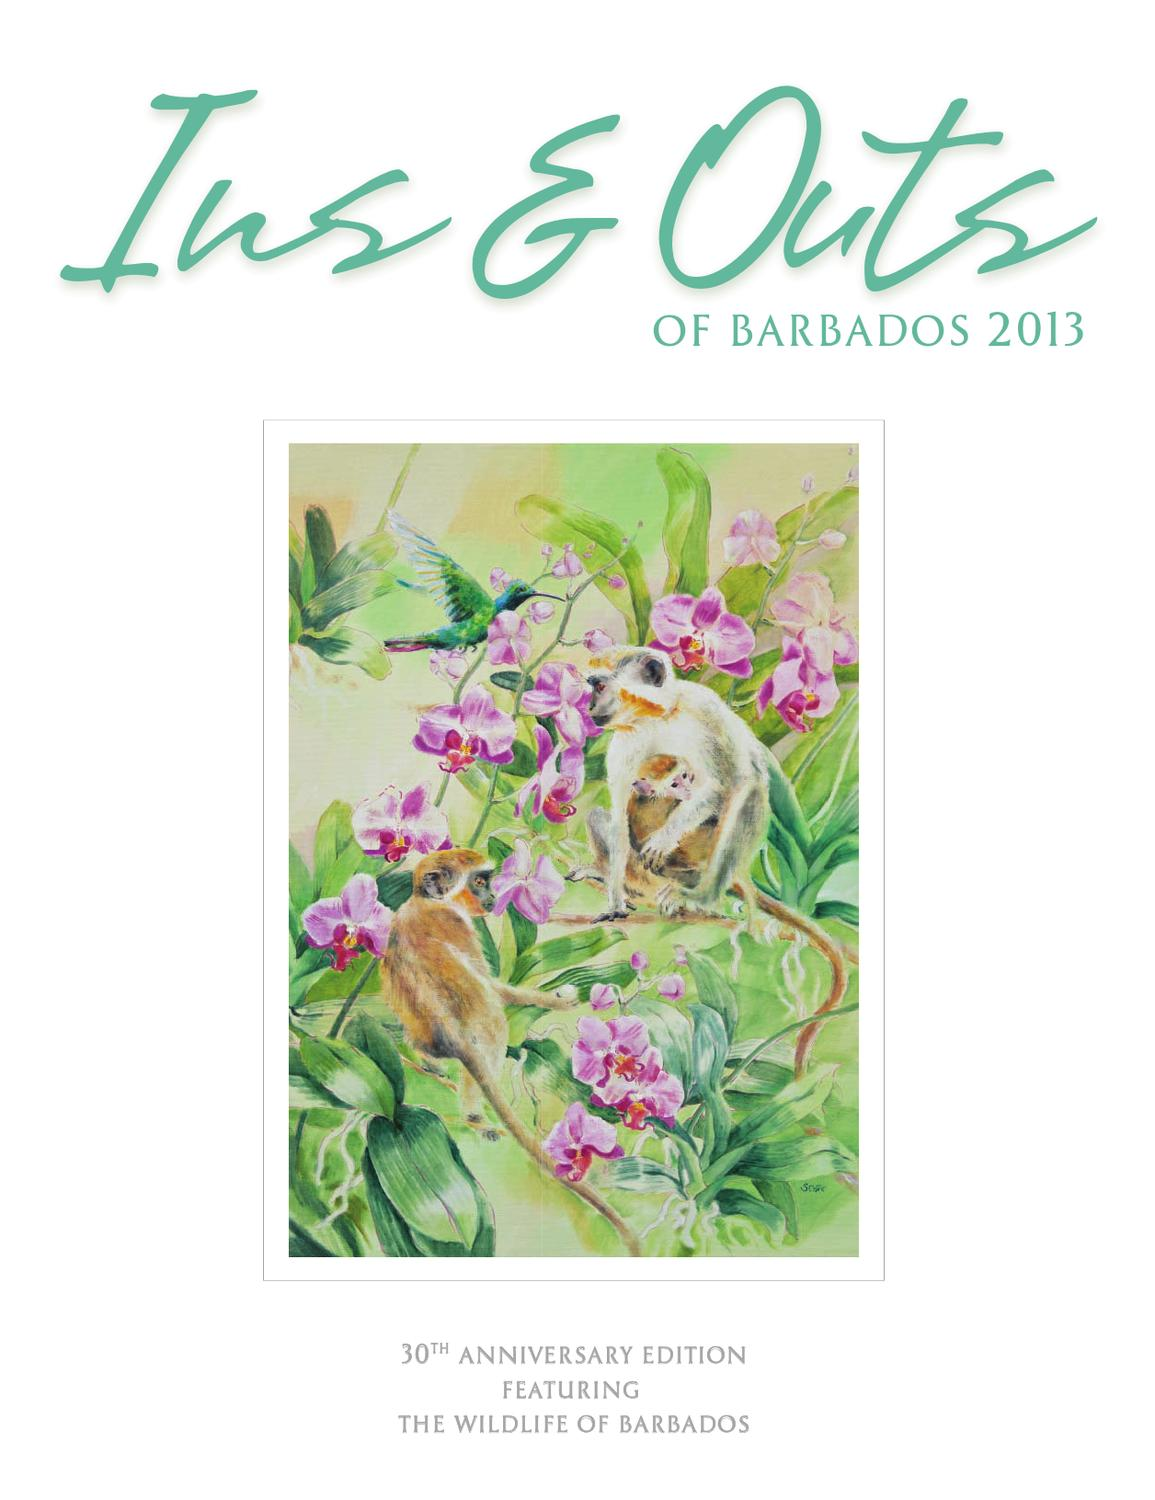 886b718ba235 Ins and Outs of Barbados 2013 by Miller Publishing Co Ltd - issuu